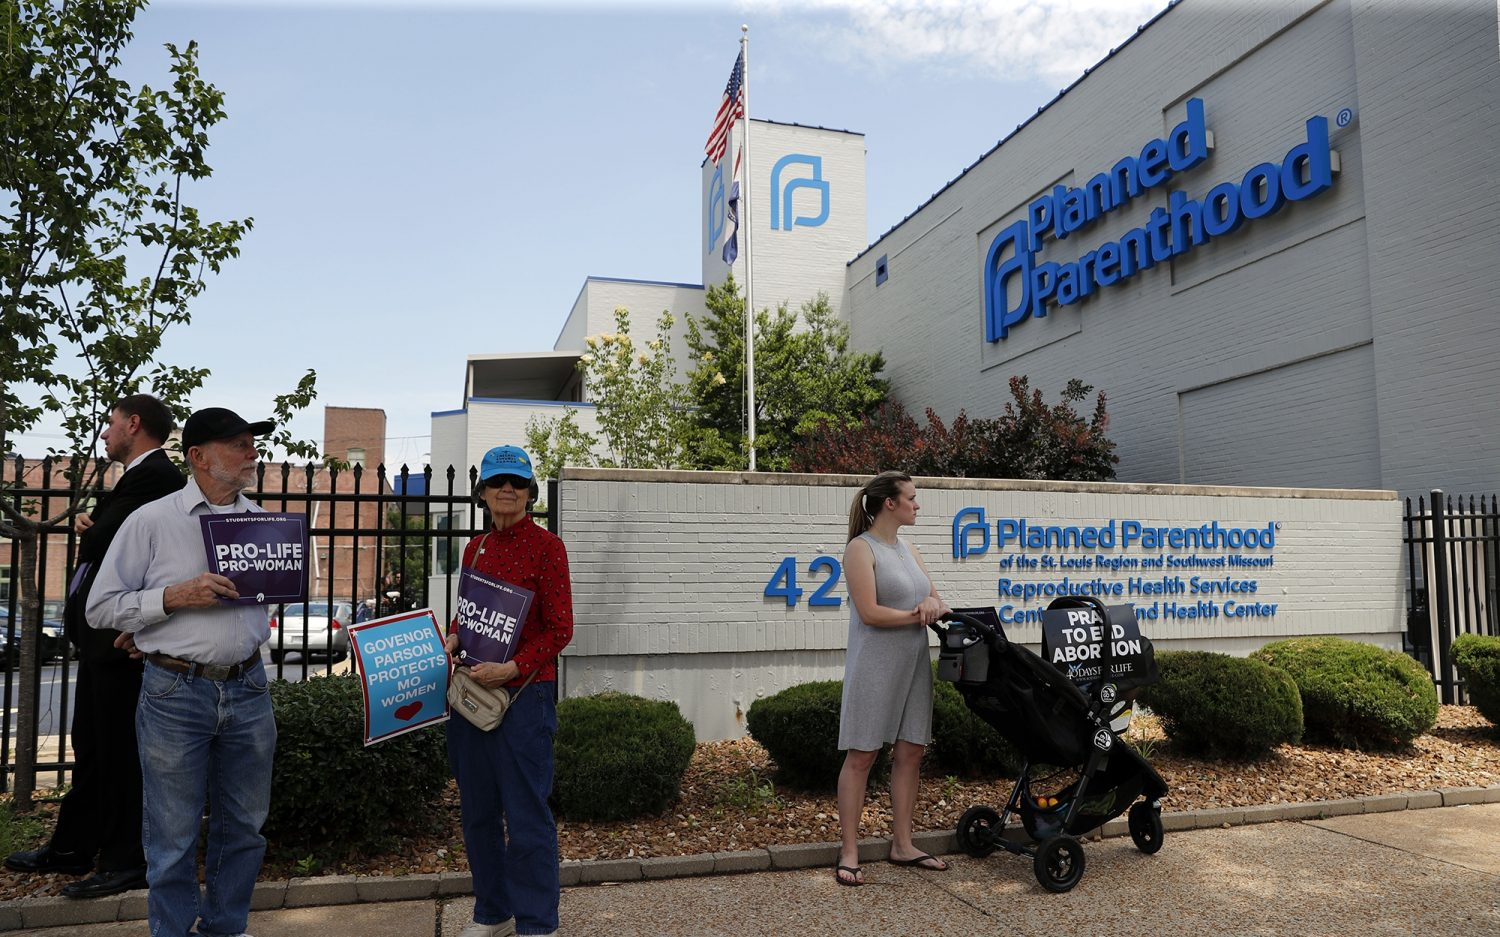 Planned Parenthood puts abortion first